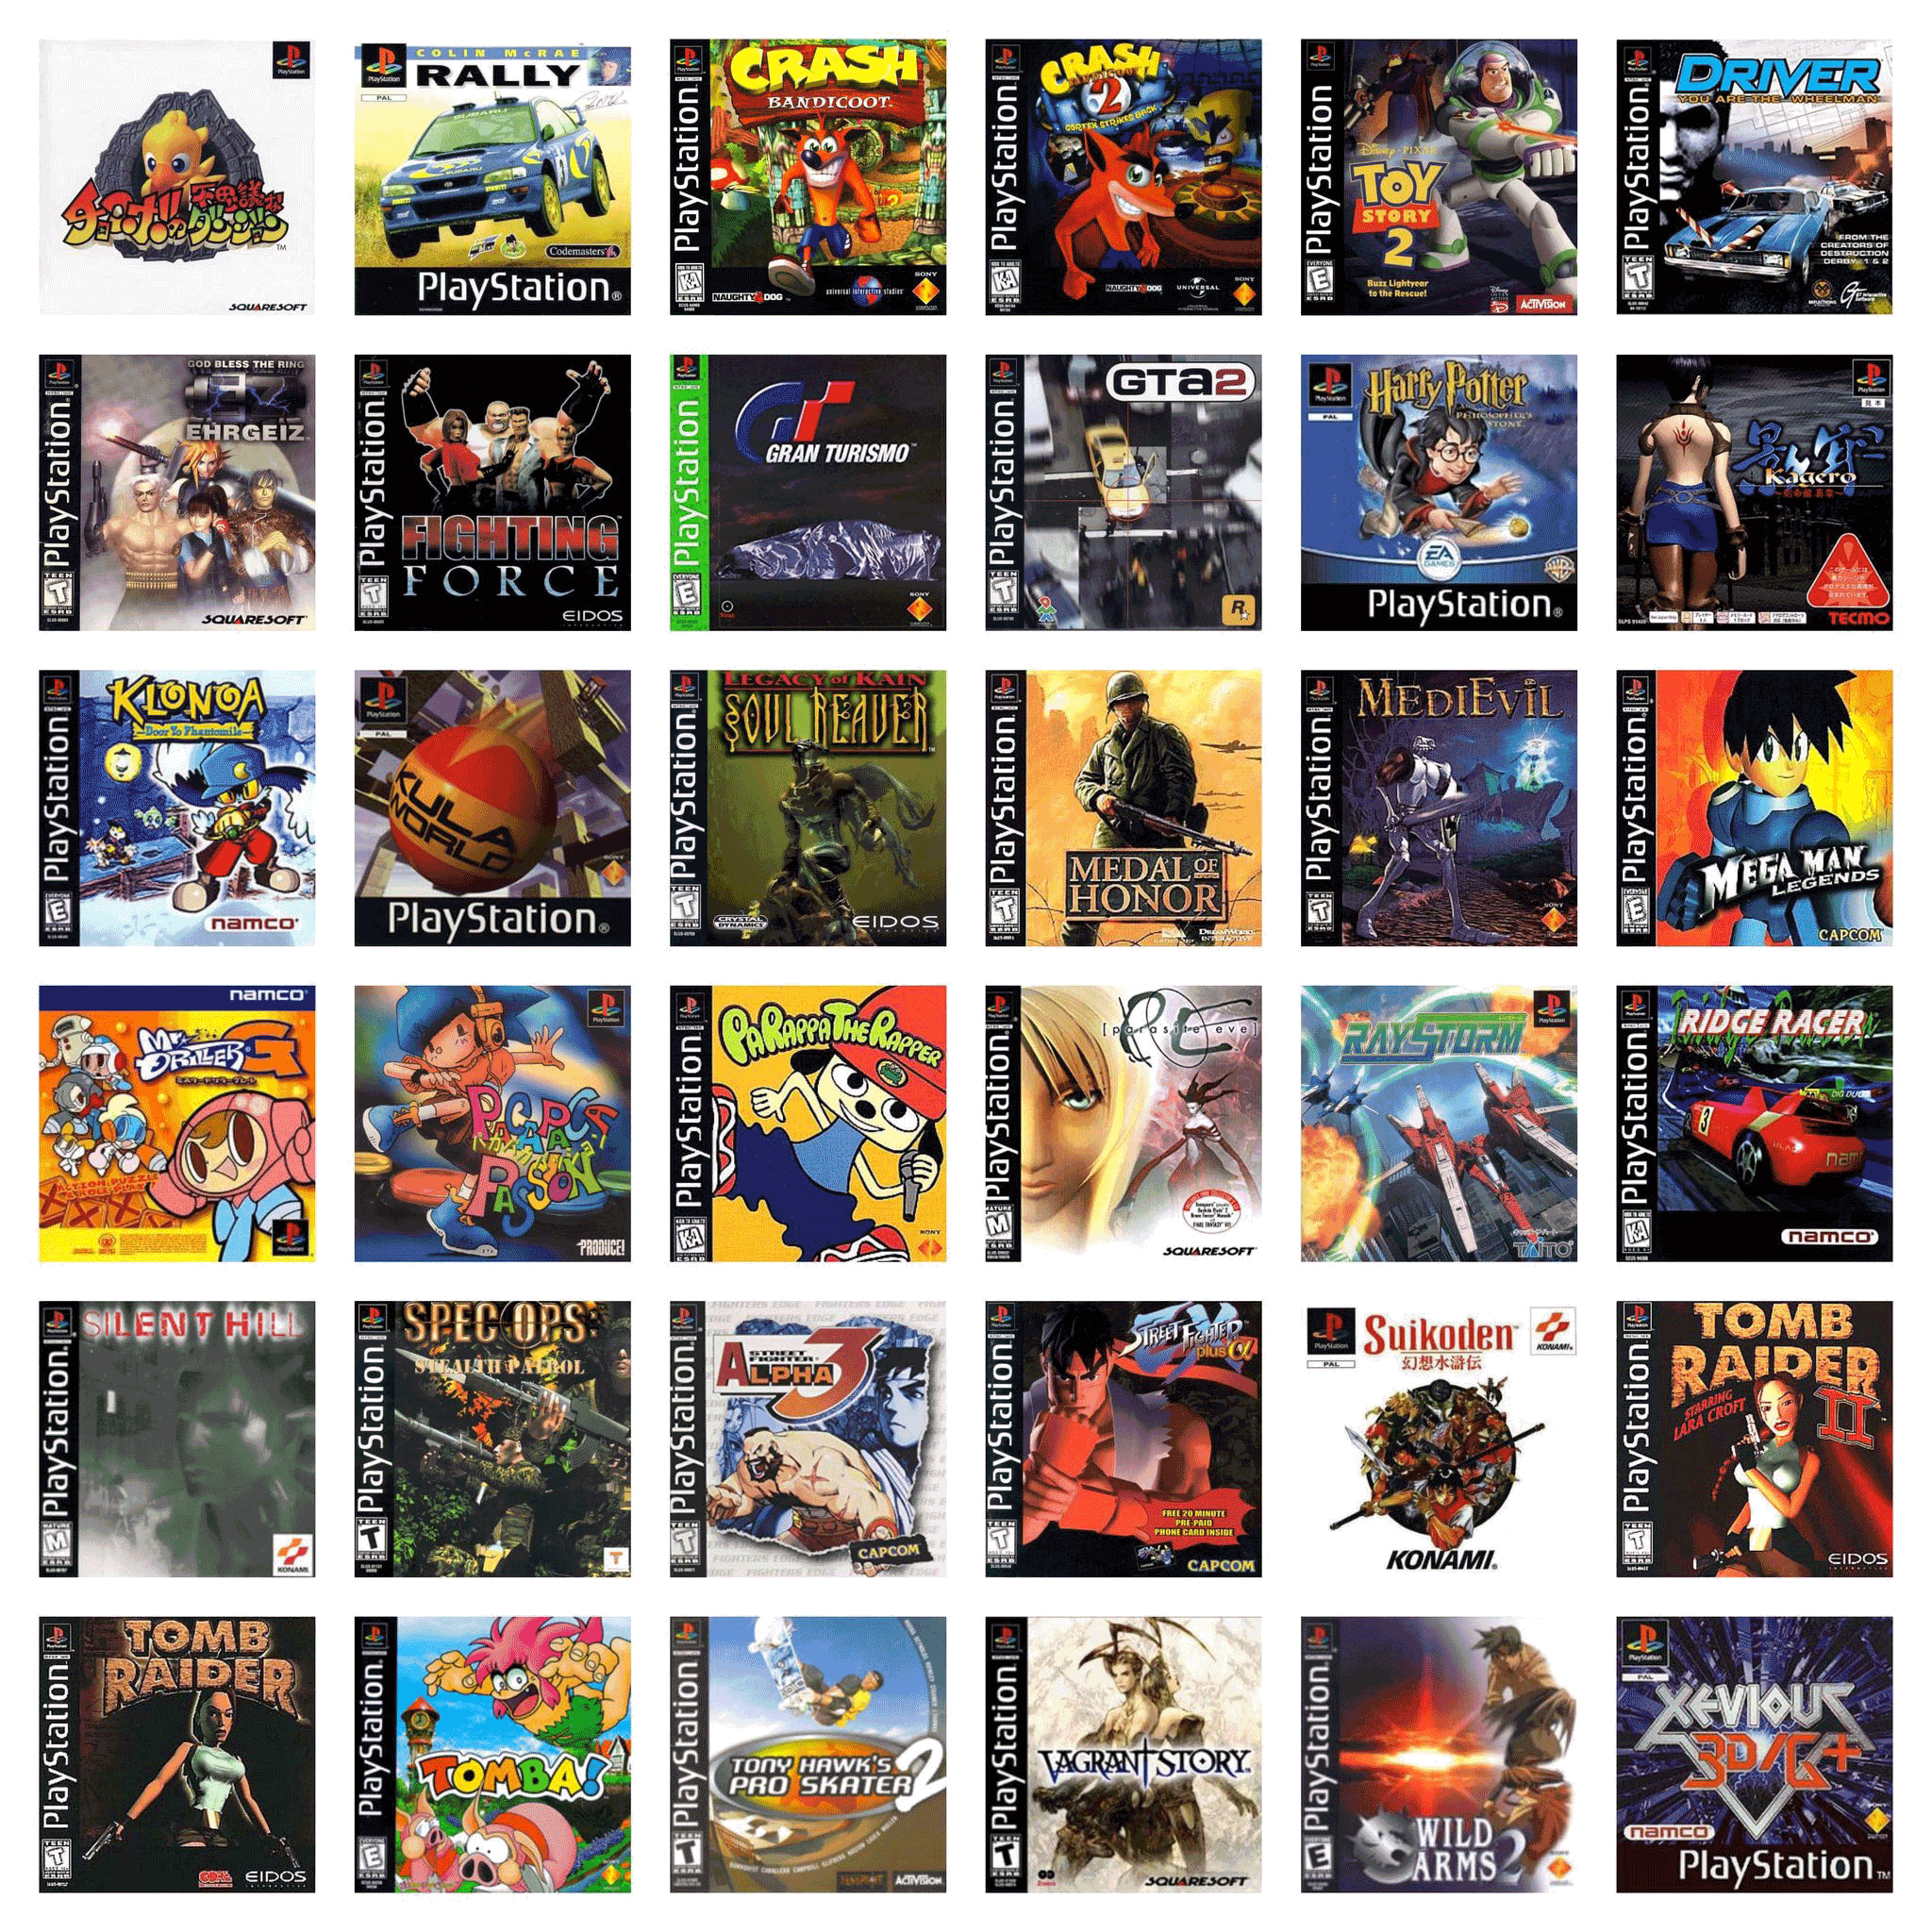 PS Classic games found in source code 1 out of 1 image gallery